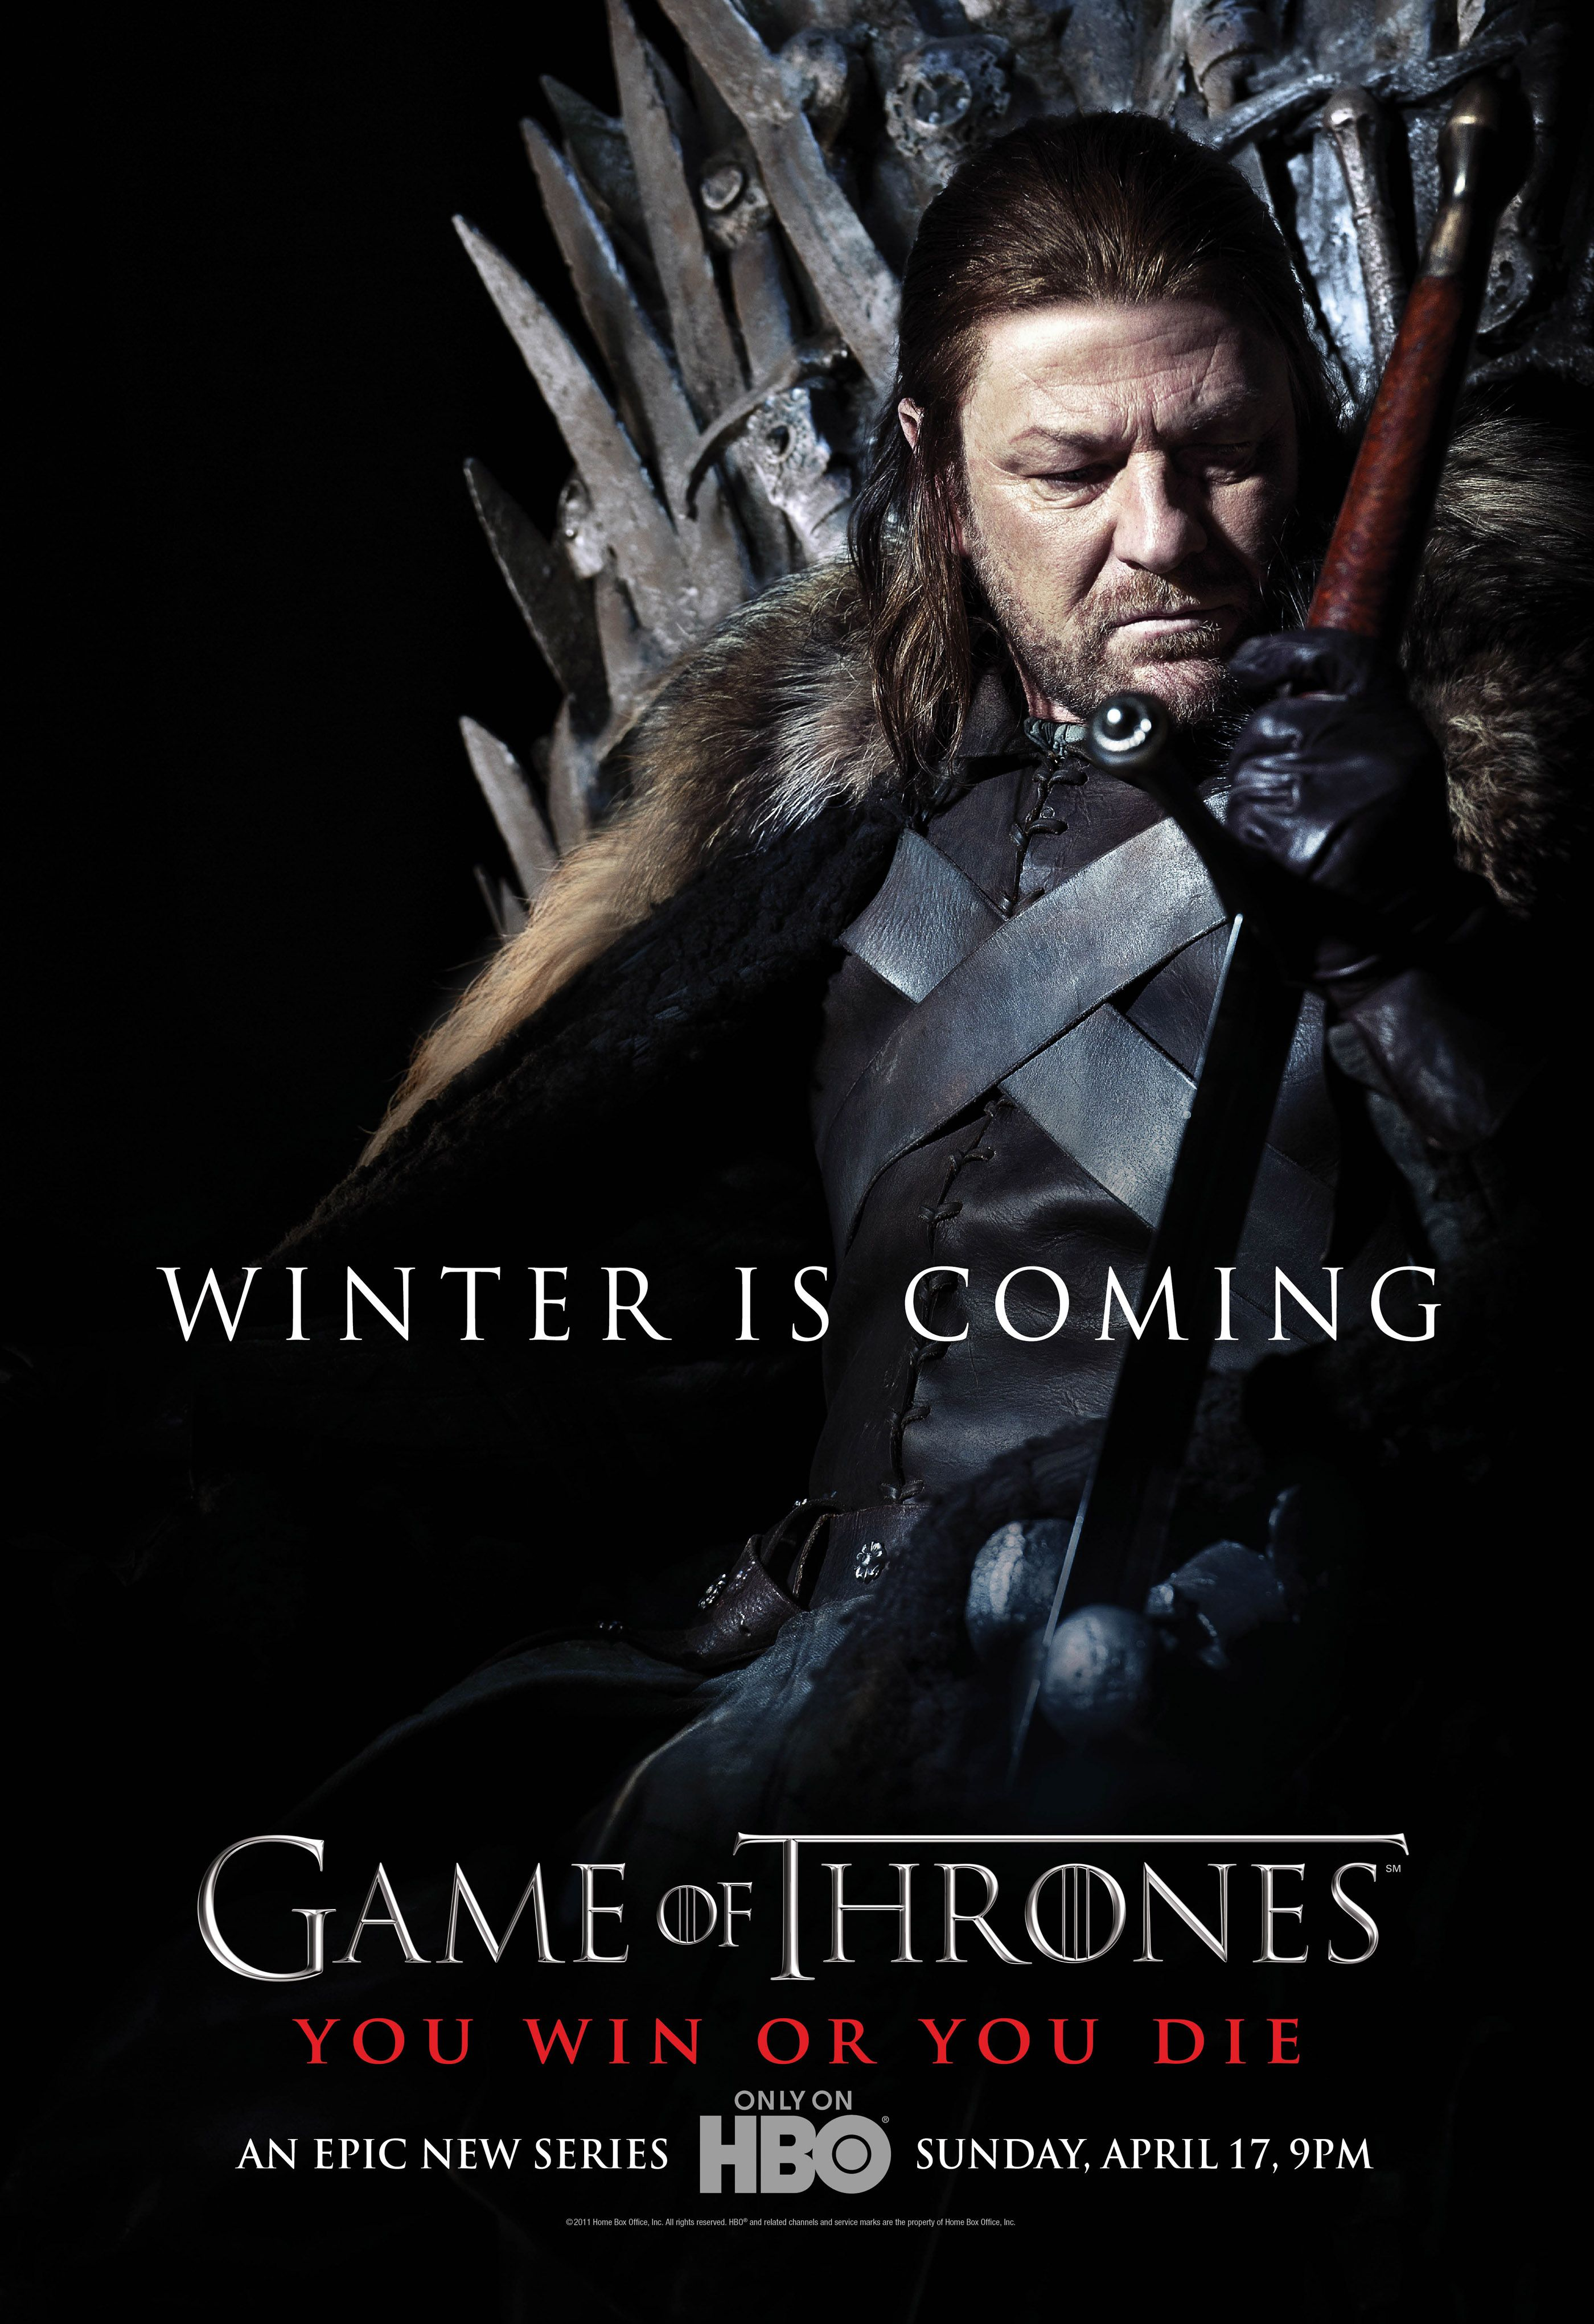 High Resolution Game Of Thrones Character Posters Making Game Of Thrones Watch Game Of Thrones Game Of Thrones Poster Game Of Thrones Episodes